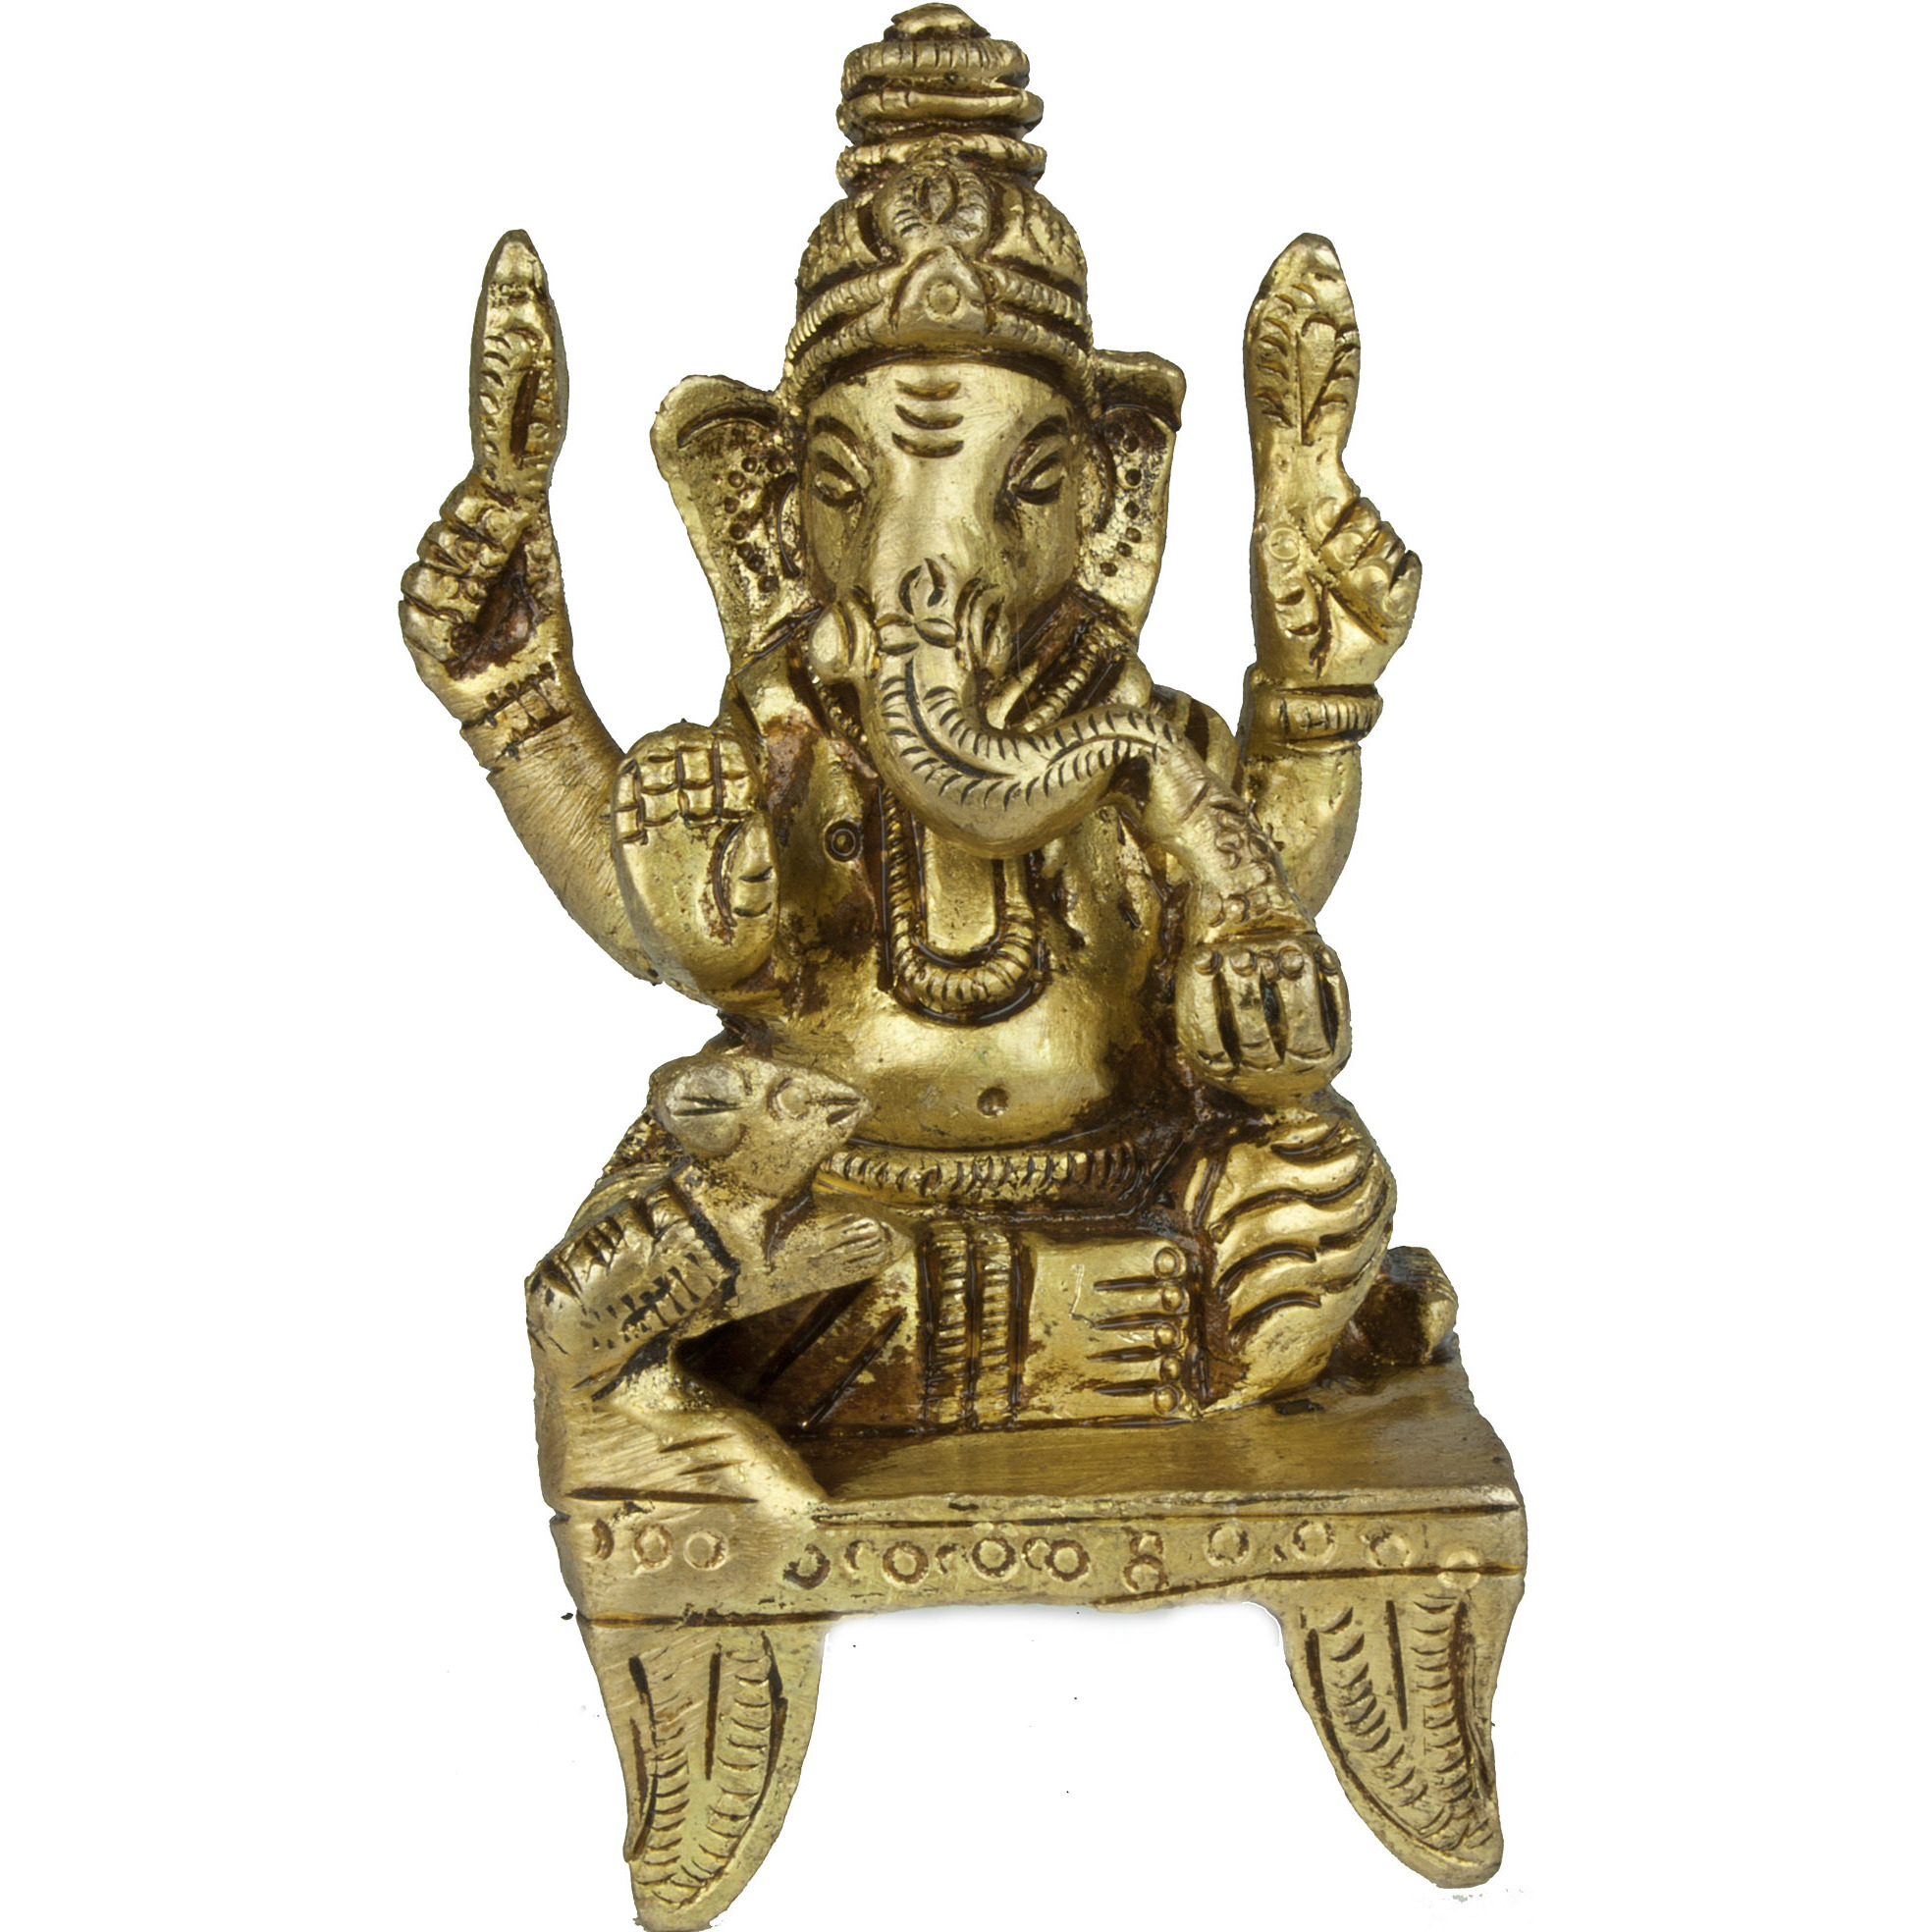 Lord Ganesha Seated on Chowki (Small Sculpture)